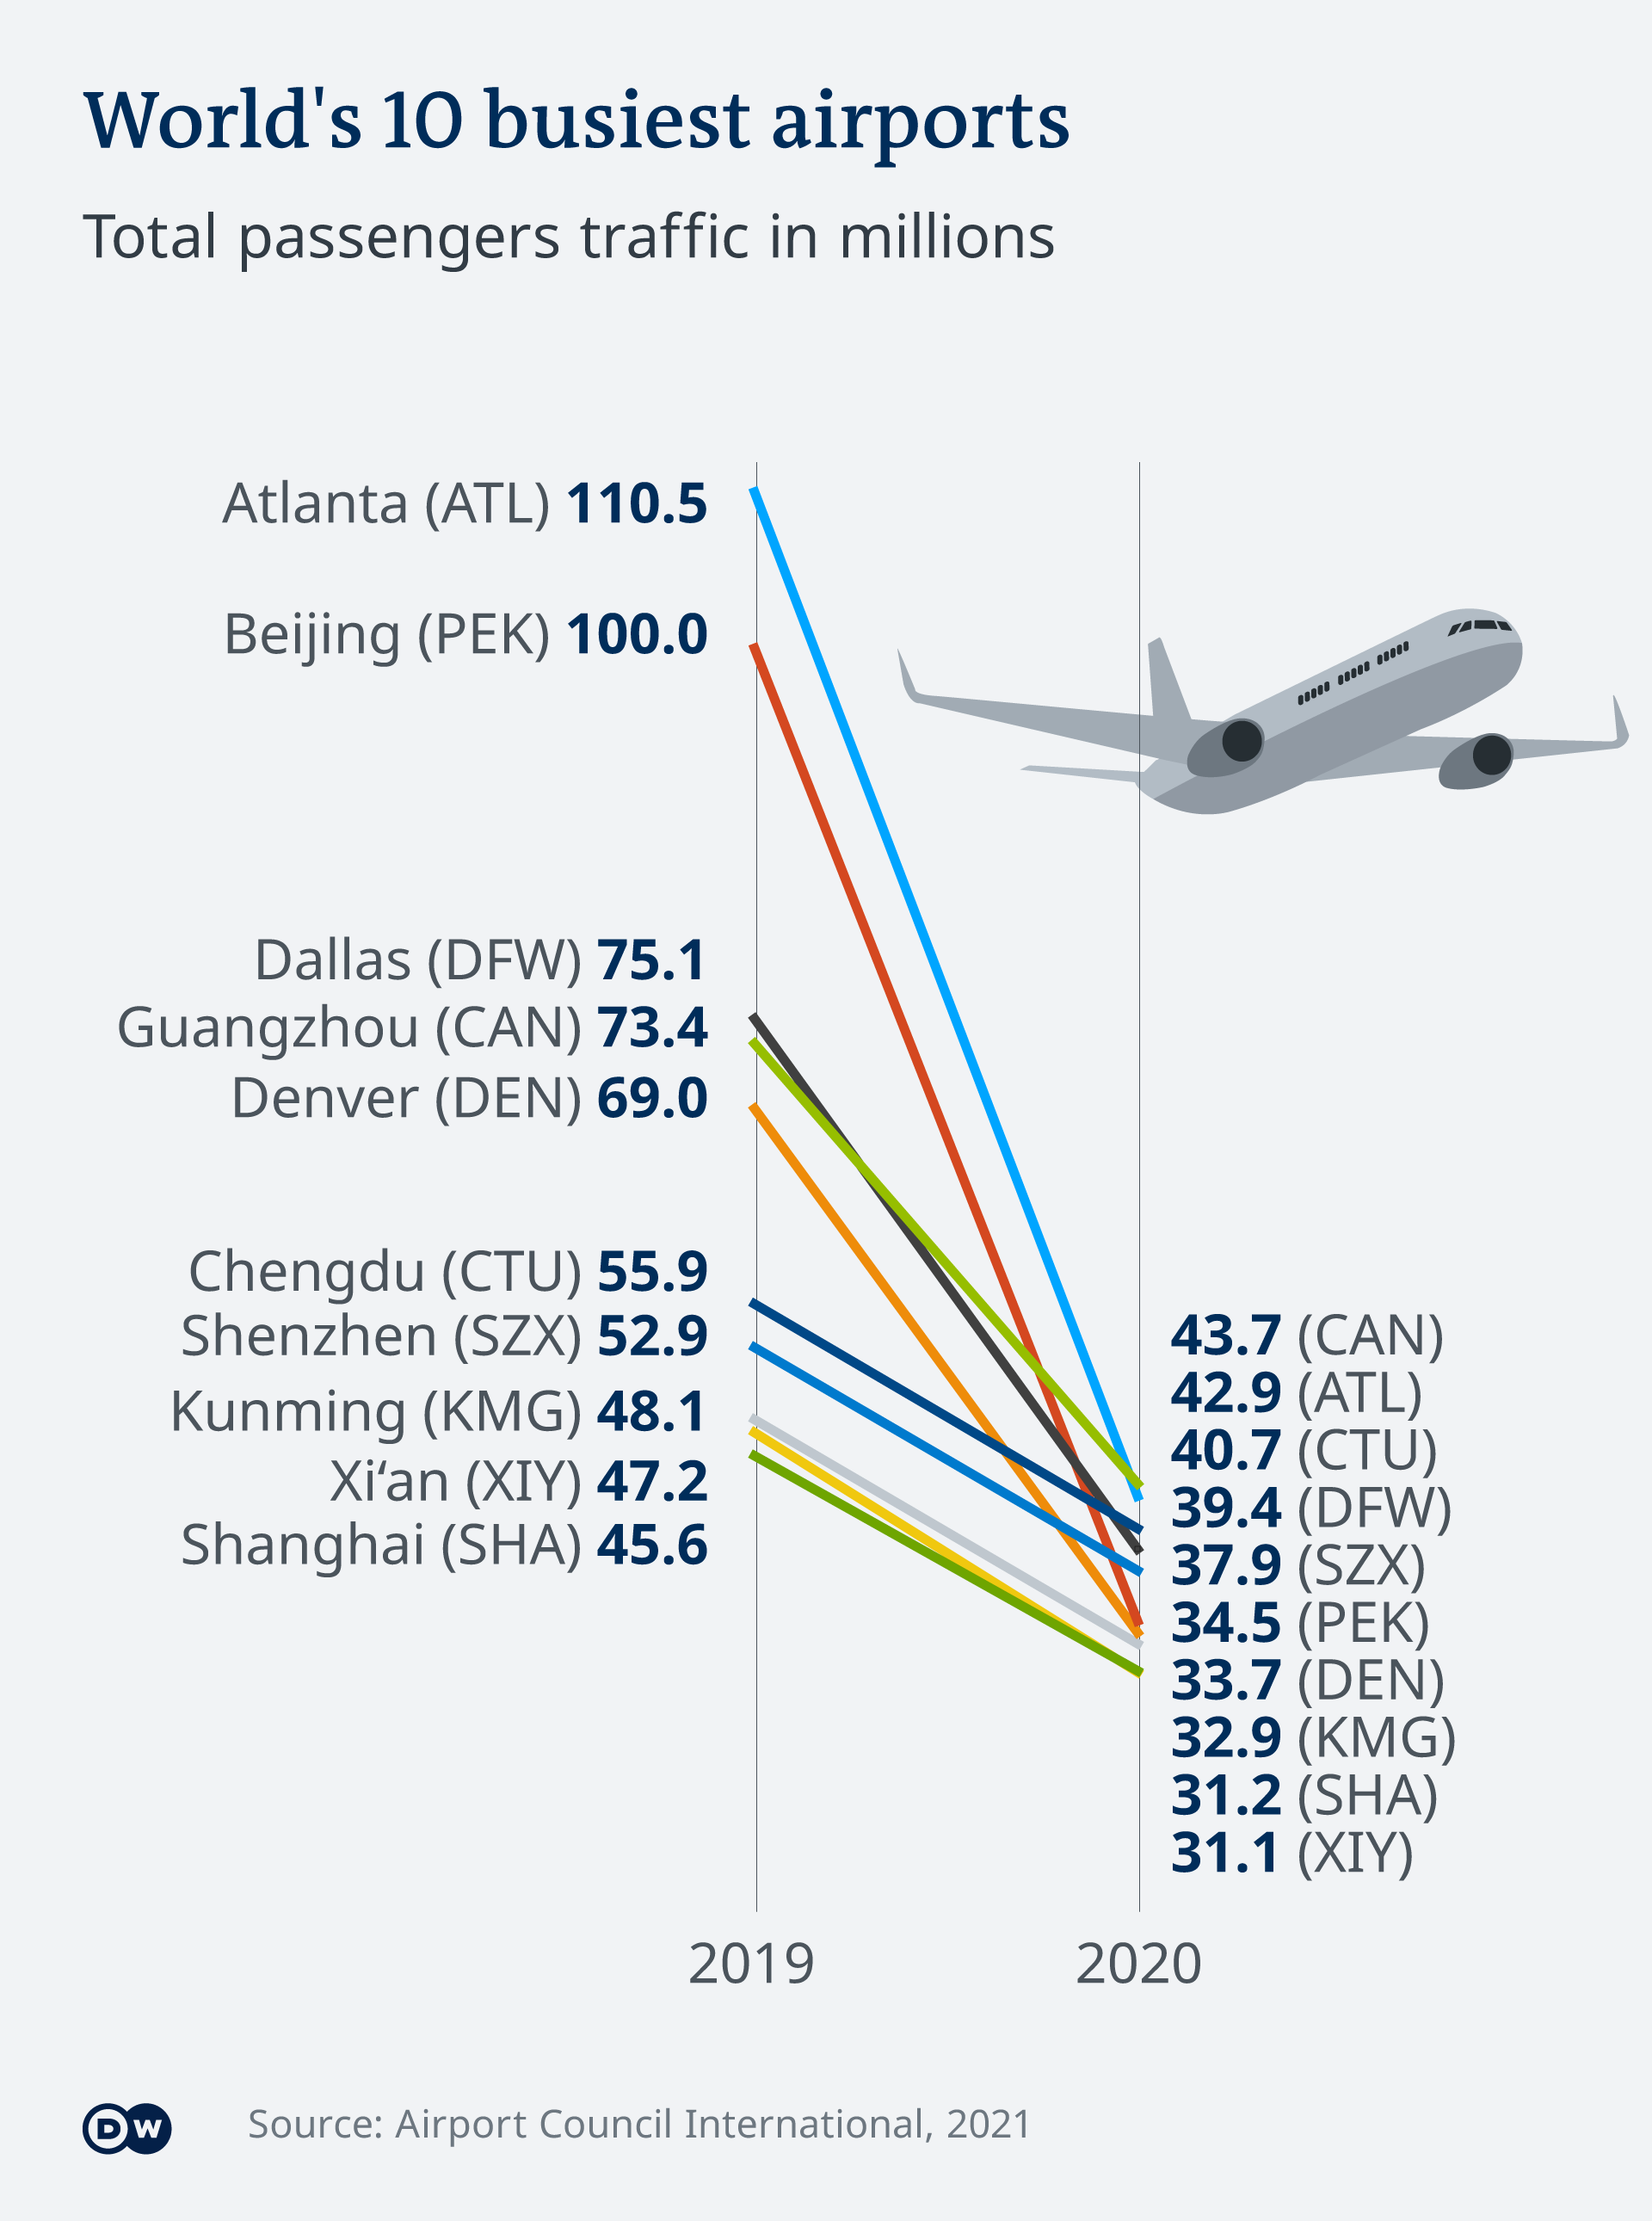 Graphic showing the 2019 and 2020 top 10 busiest airports and the change in passenger traffic